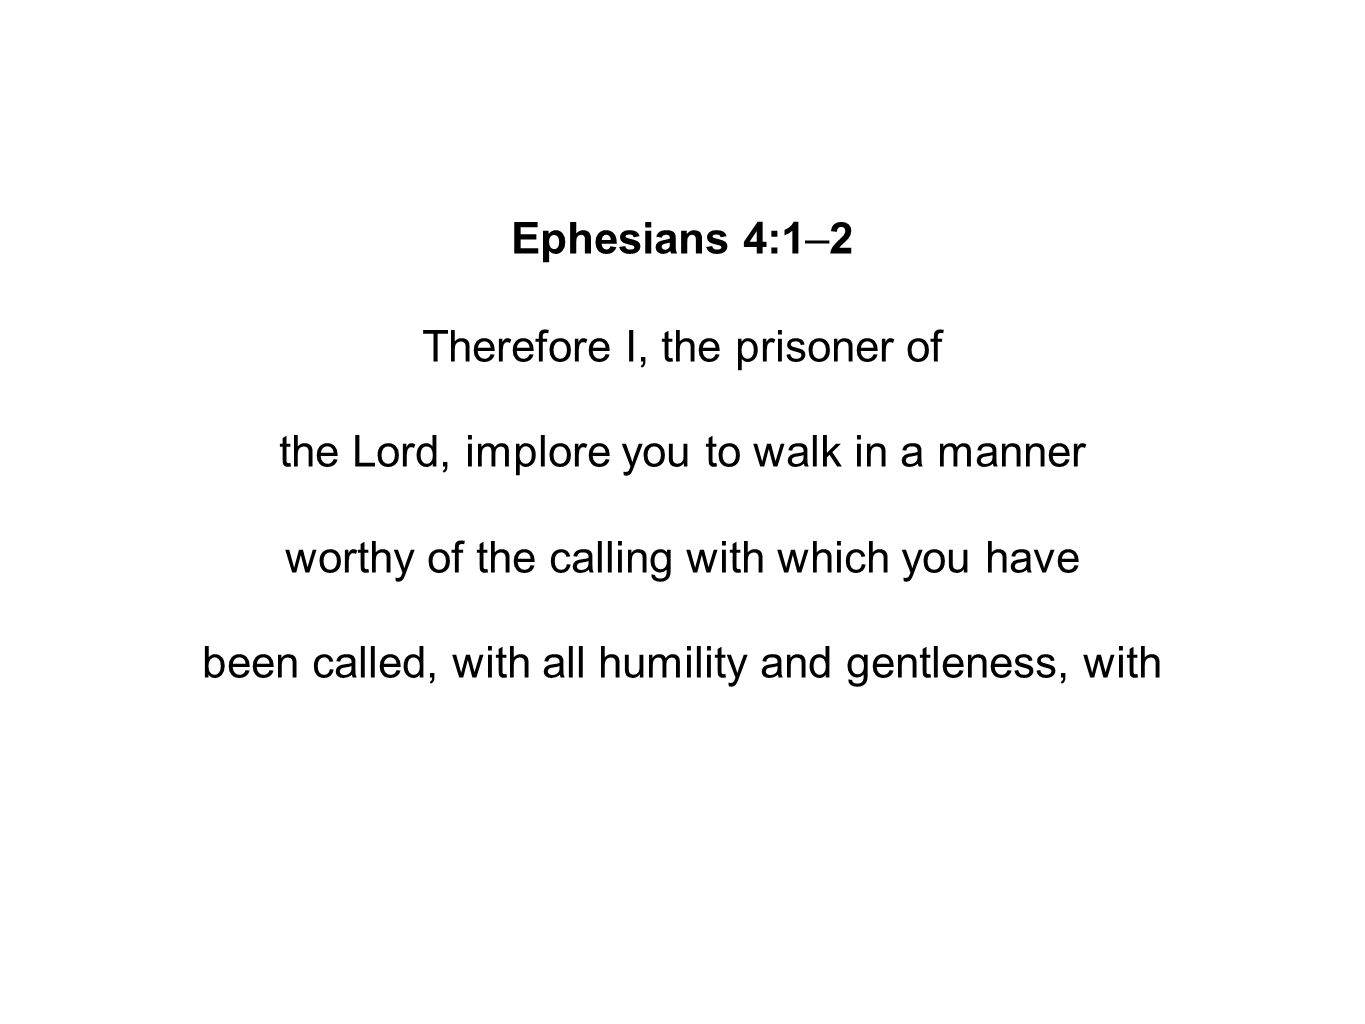 Ephesians 4:1–2 Therefore I, the prisoner of the Lord, implore you to walk in a manner worthy of the calling with which you have been called, with all humility and gentleness, with